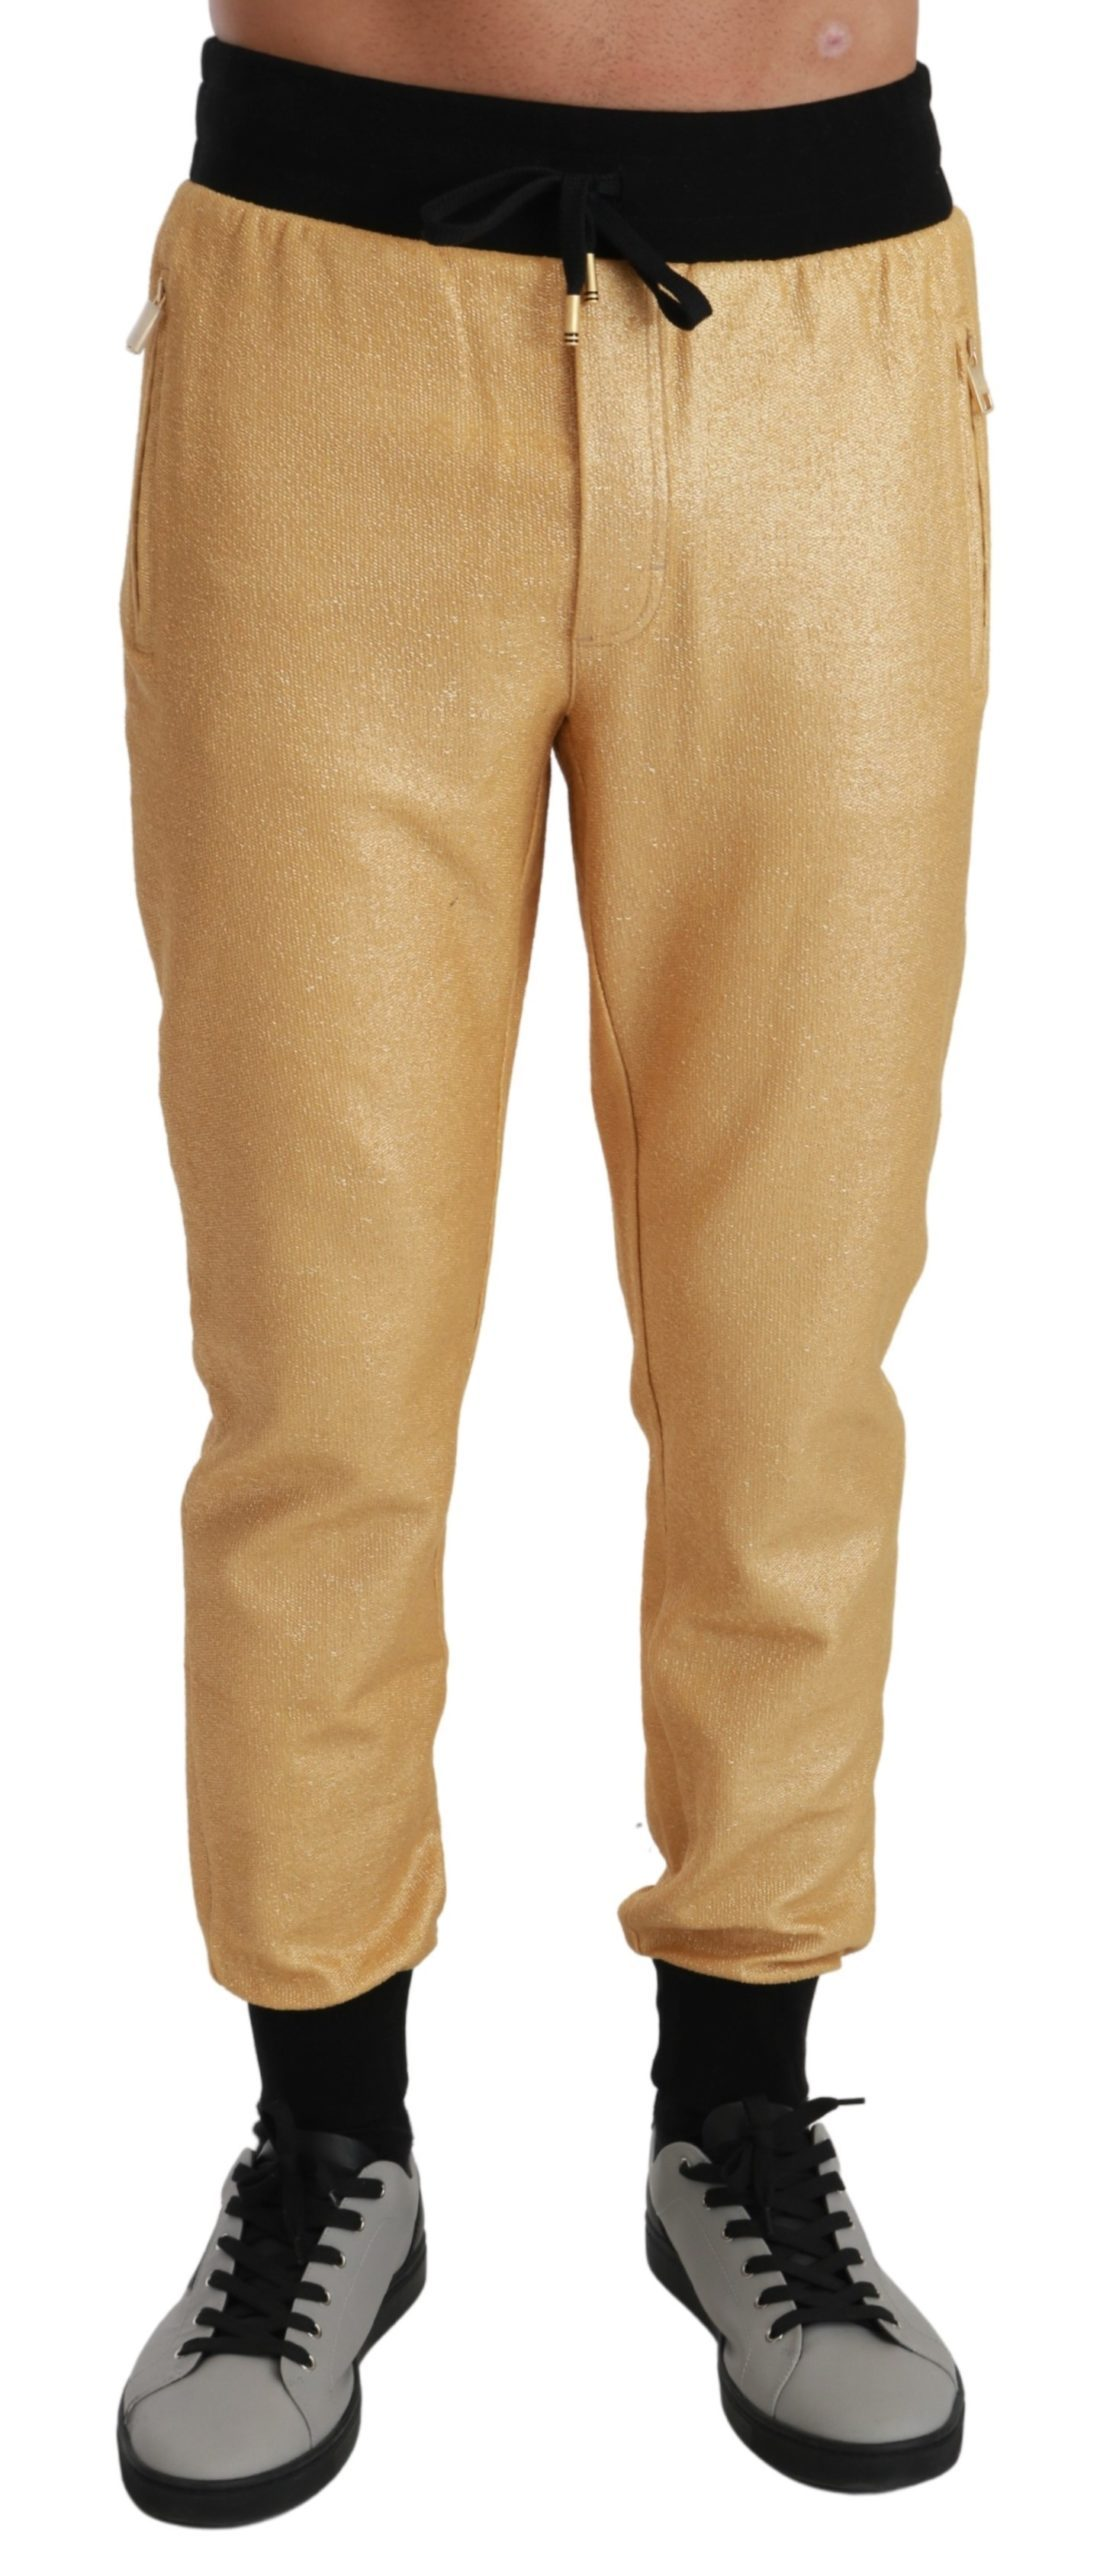 Dolce & Gabbana Men's Pig of the Year Trouser Gold PAN71036 - IT44   XS